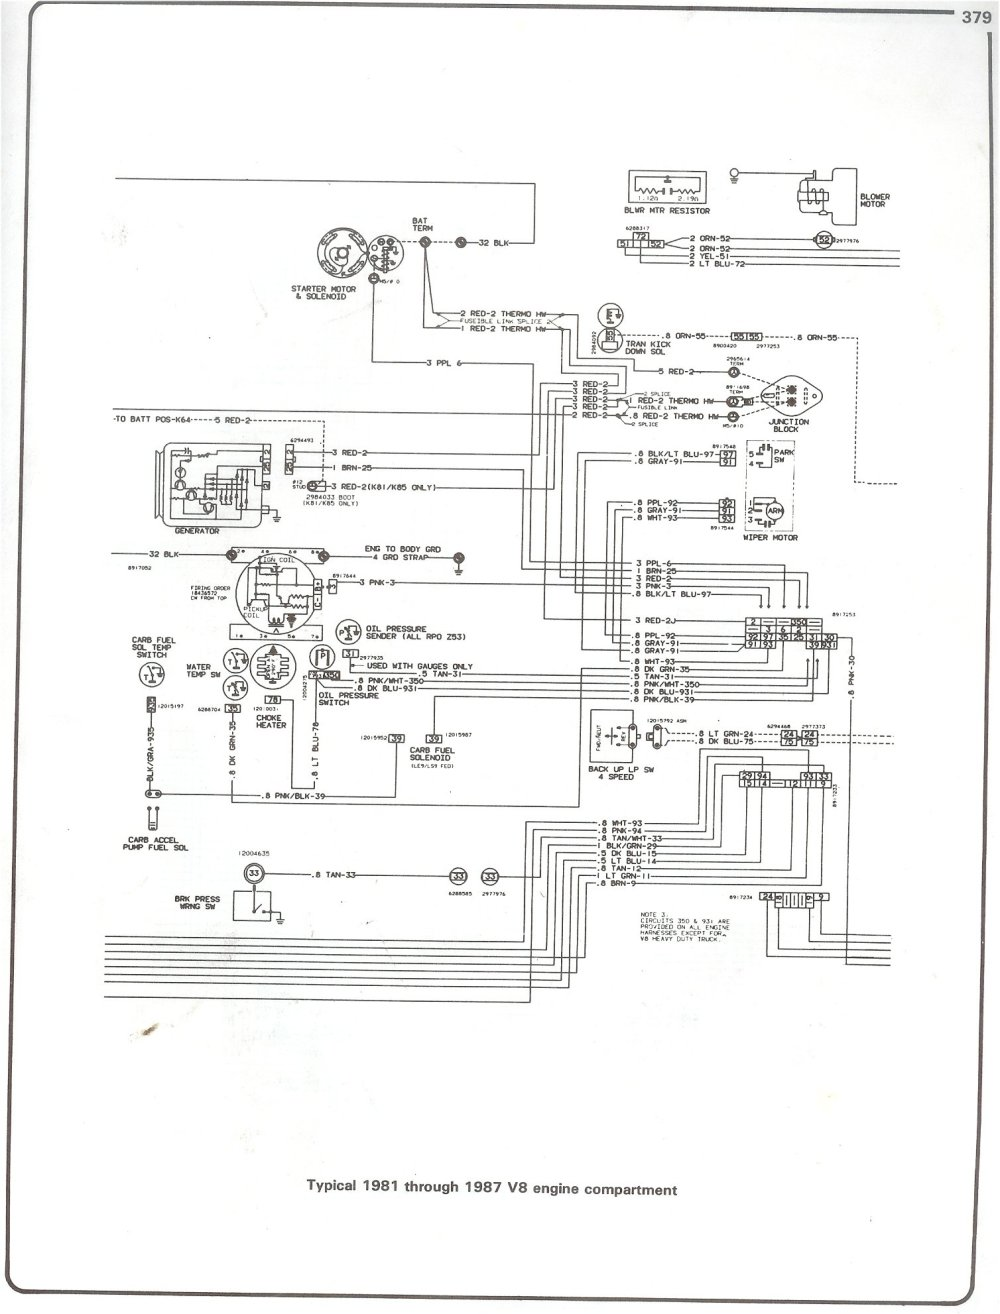 medium resolution of 73 87 c10 wiring harness wiring diagram yer87 chevy truck wire harness wiring diagram imp 73